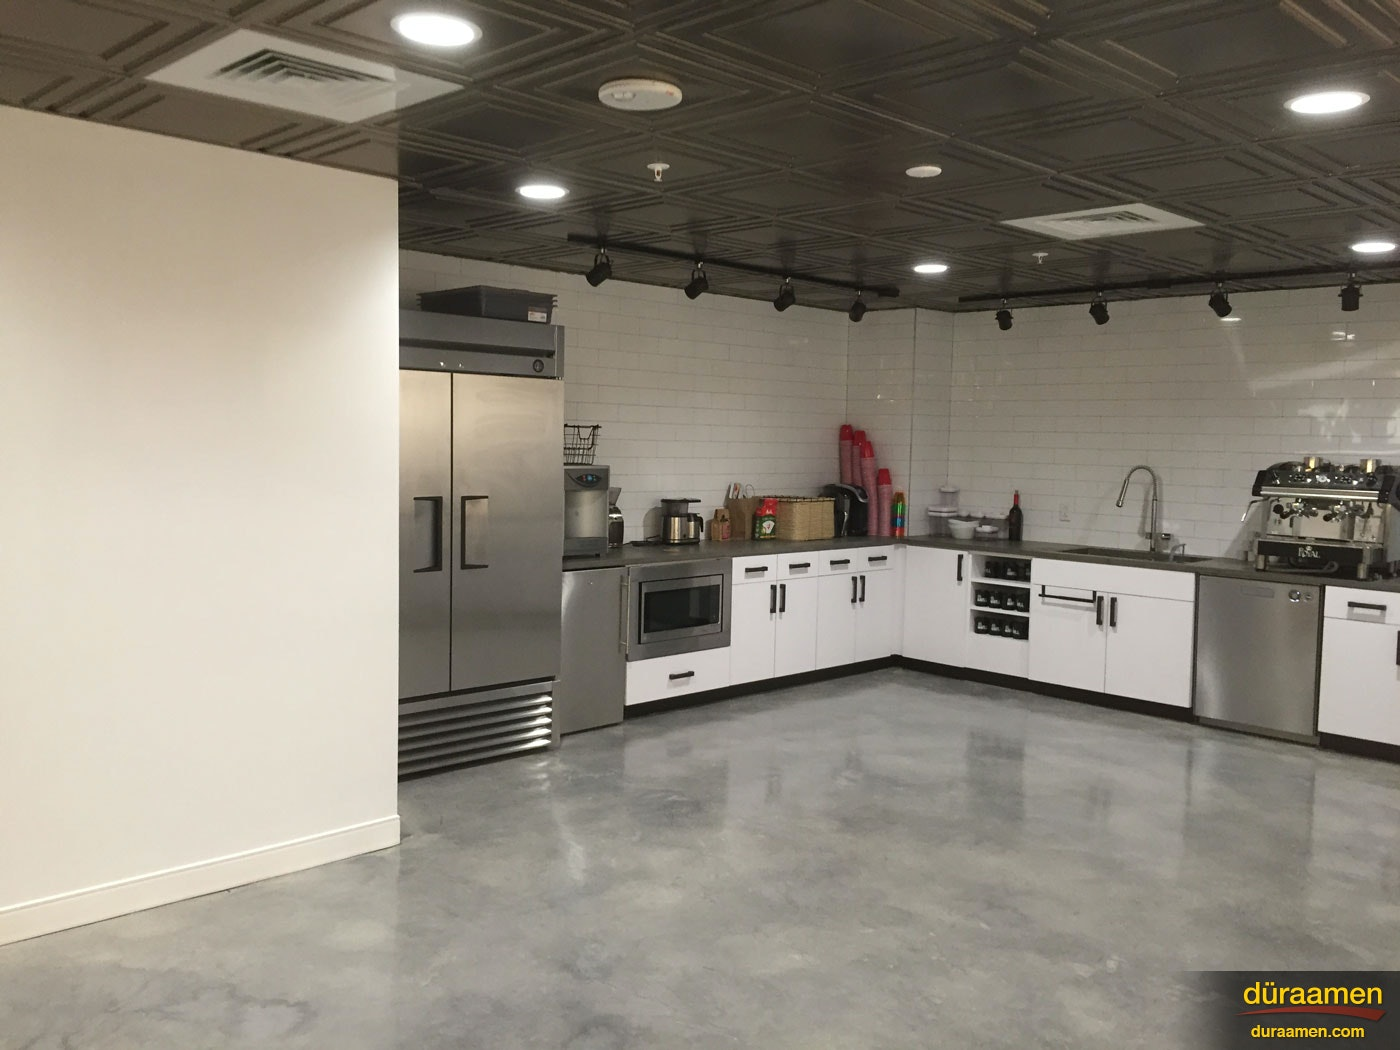 Polished Concrete Floors In Shared Work Space Wilmington De